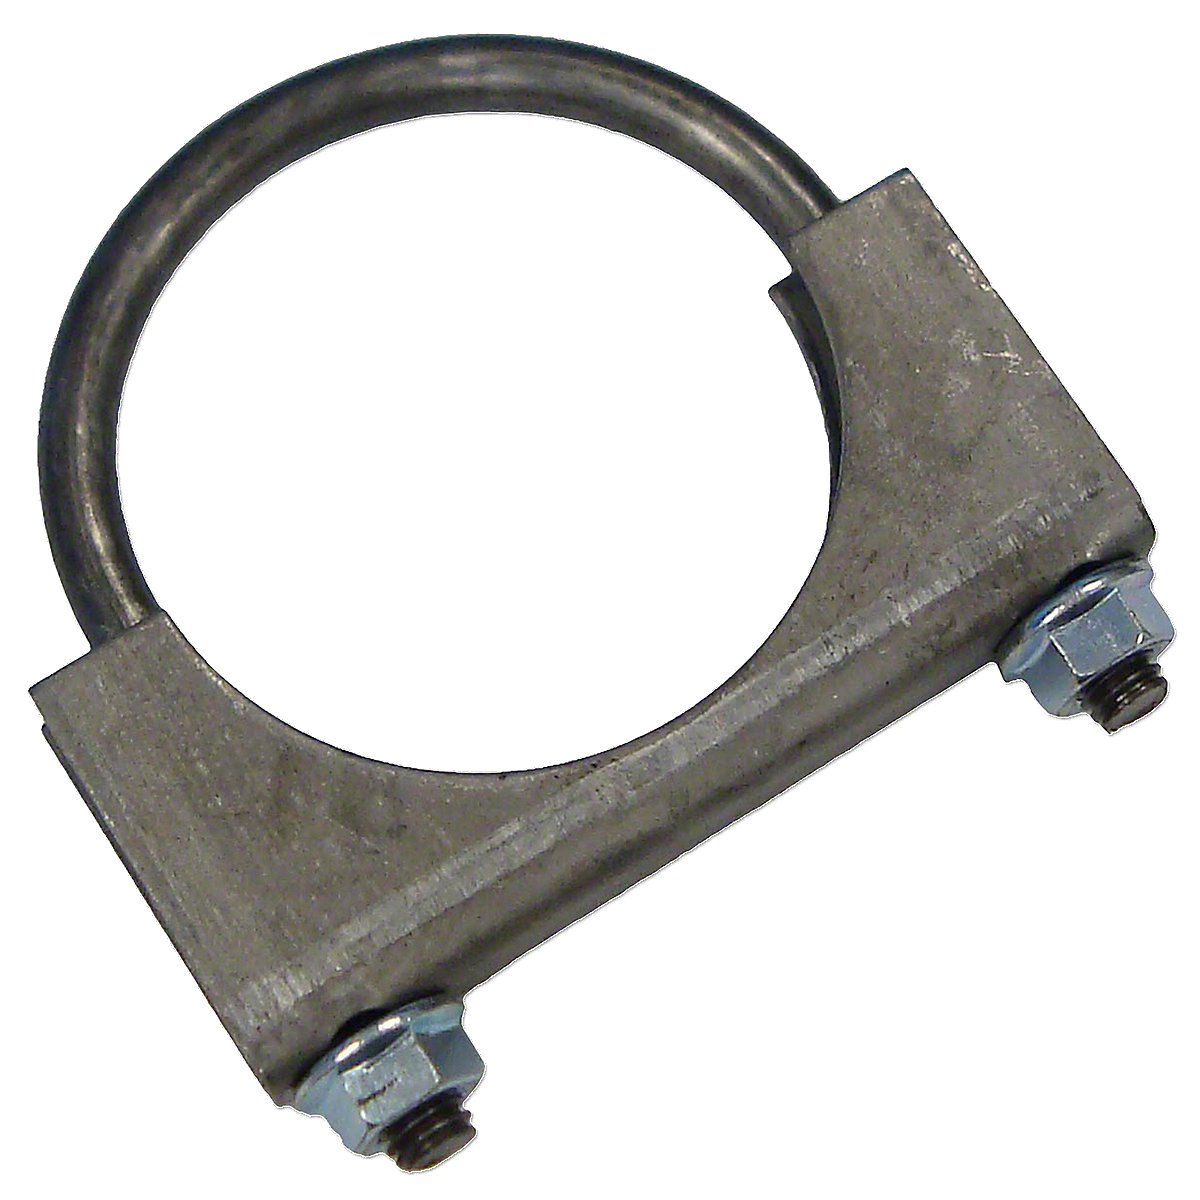 2-3/4 Muffler Clamp For Massey Harris and Massey Ferguson Tractors.